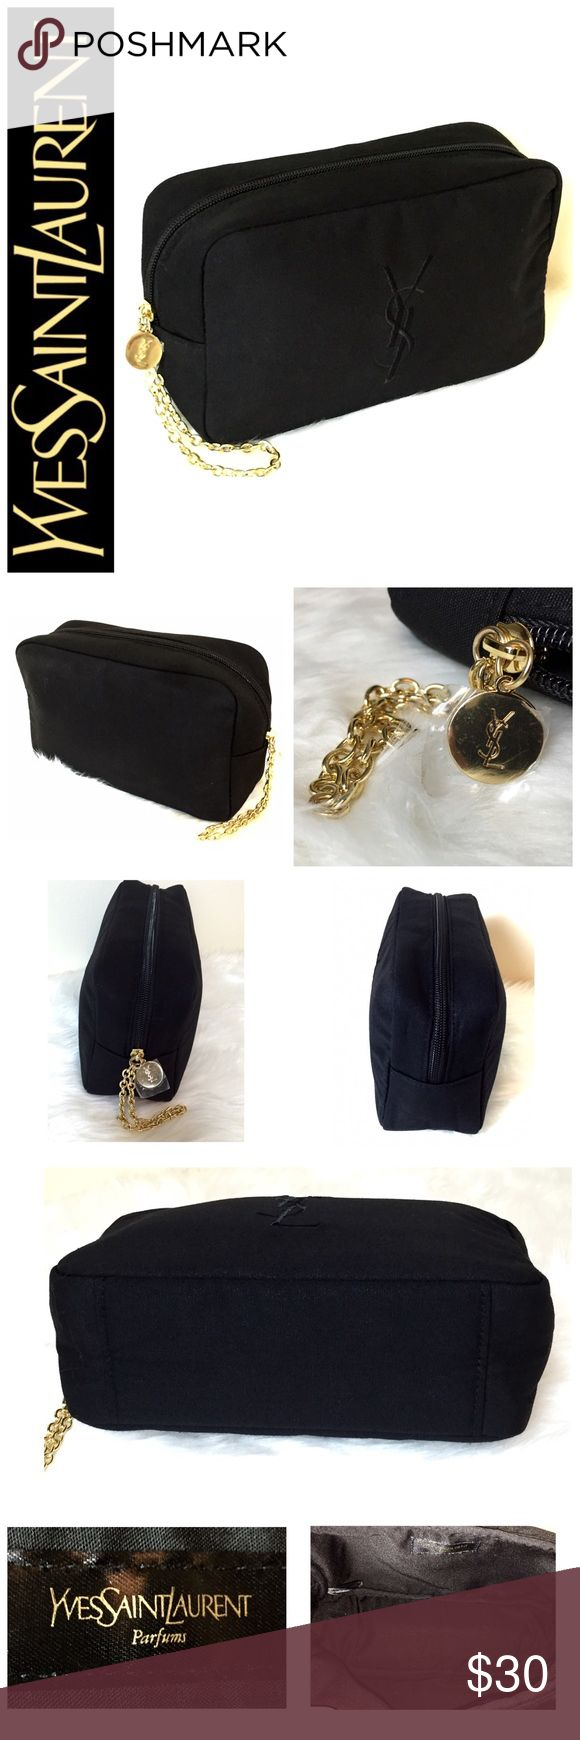 """Yves Saint Laurent Designer Cosmetic Travel Bag Yves Saint Laurent Designer Cosmetic Travel Bag, Beautiful Black YSL Stitching in Black Canvas with Gold Hardware, Approx. Size is 8 1/2""""x 5""""x 2 3/4"""", A Must Have for Every Traveling Woman, NWOT! Bags Cosmetic Bags & Cases"""